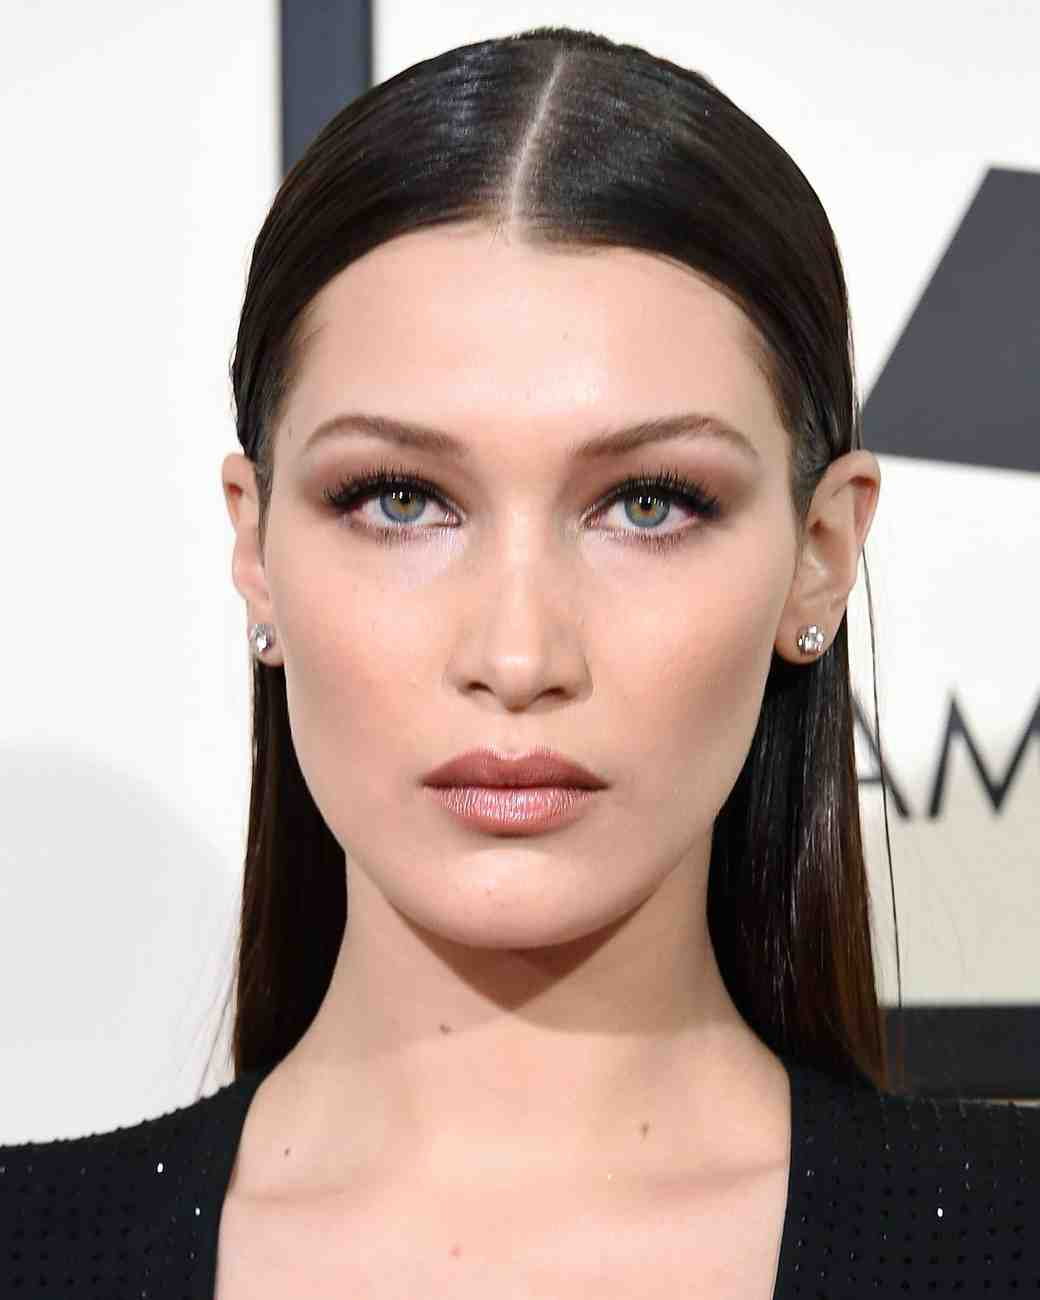 grammy-awards-2016-makeup-bella-hadid-0216.jpg